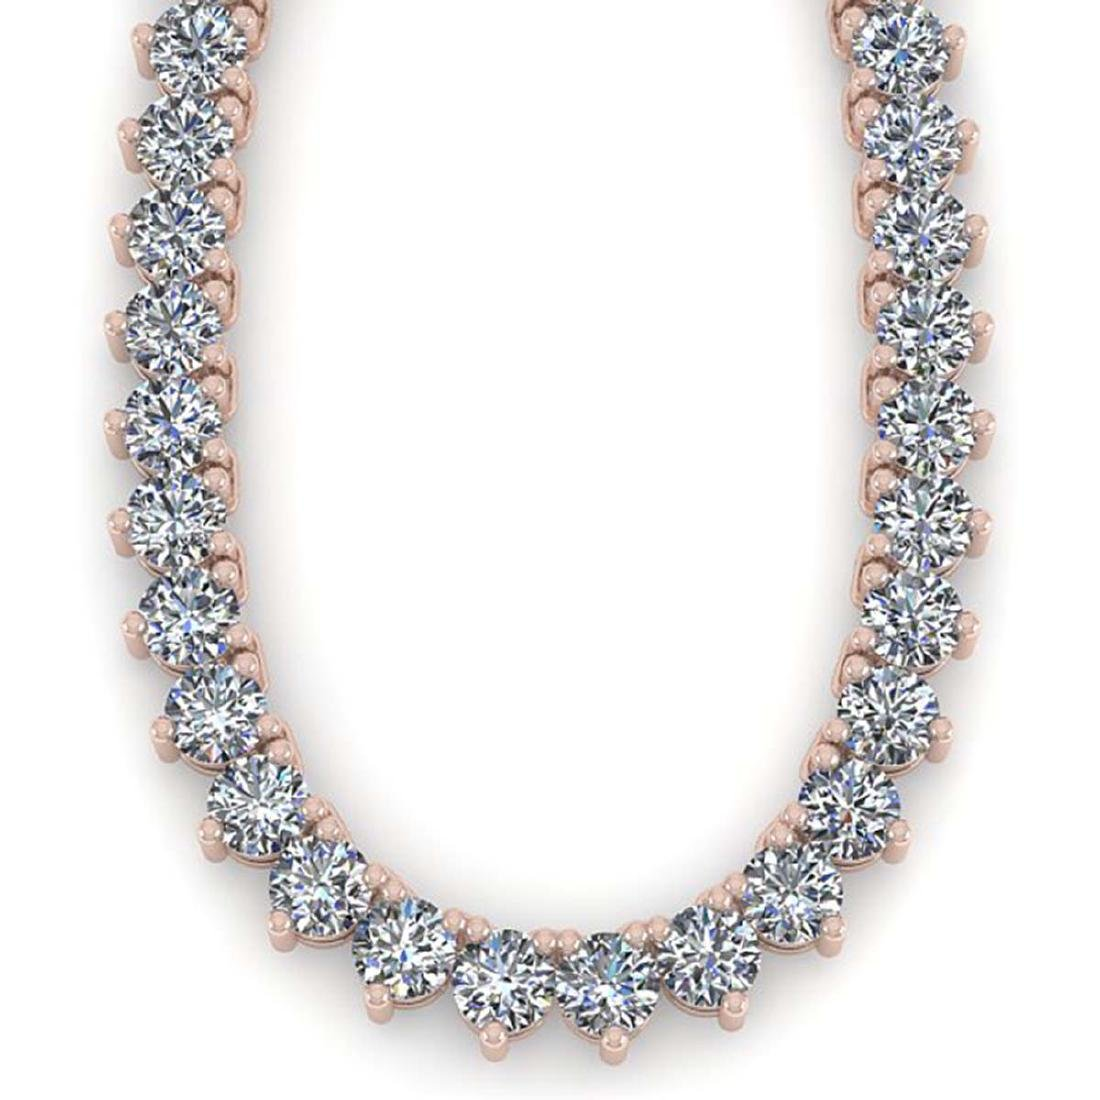 54 CTW Solitaire Certified SI Diamond Necklace 14K Rose - 2